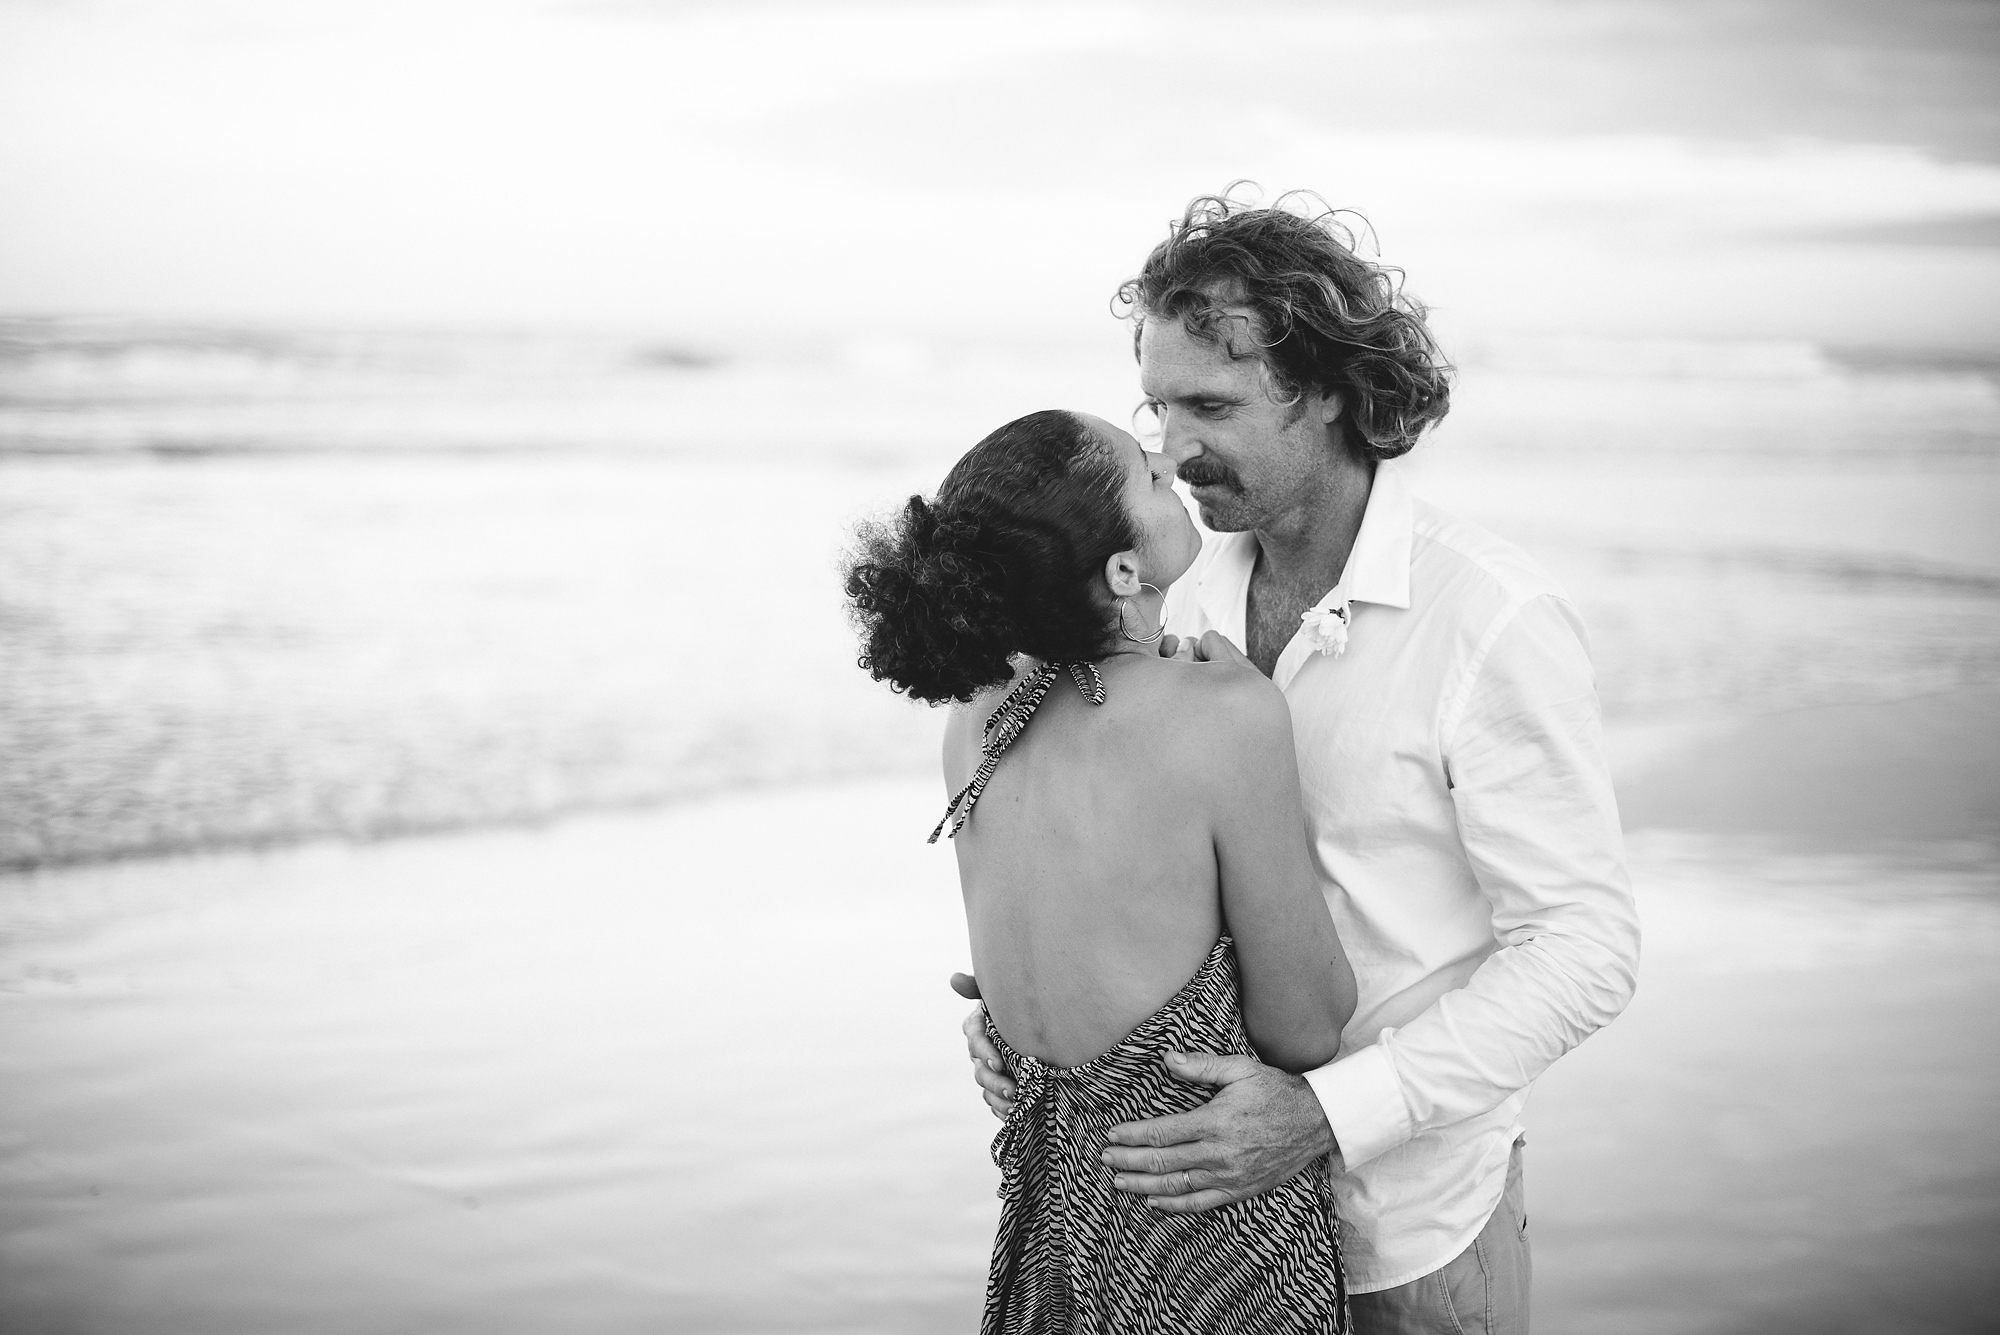 Fotograf Konstanz - Wedding Photographer ByronBay Australia EFP 080 - Destination Wedding in Byron Bay, Australien  - 176 -